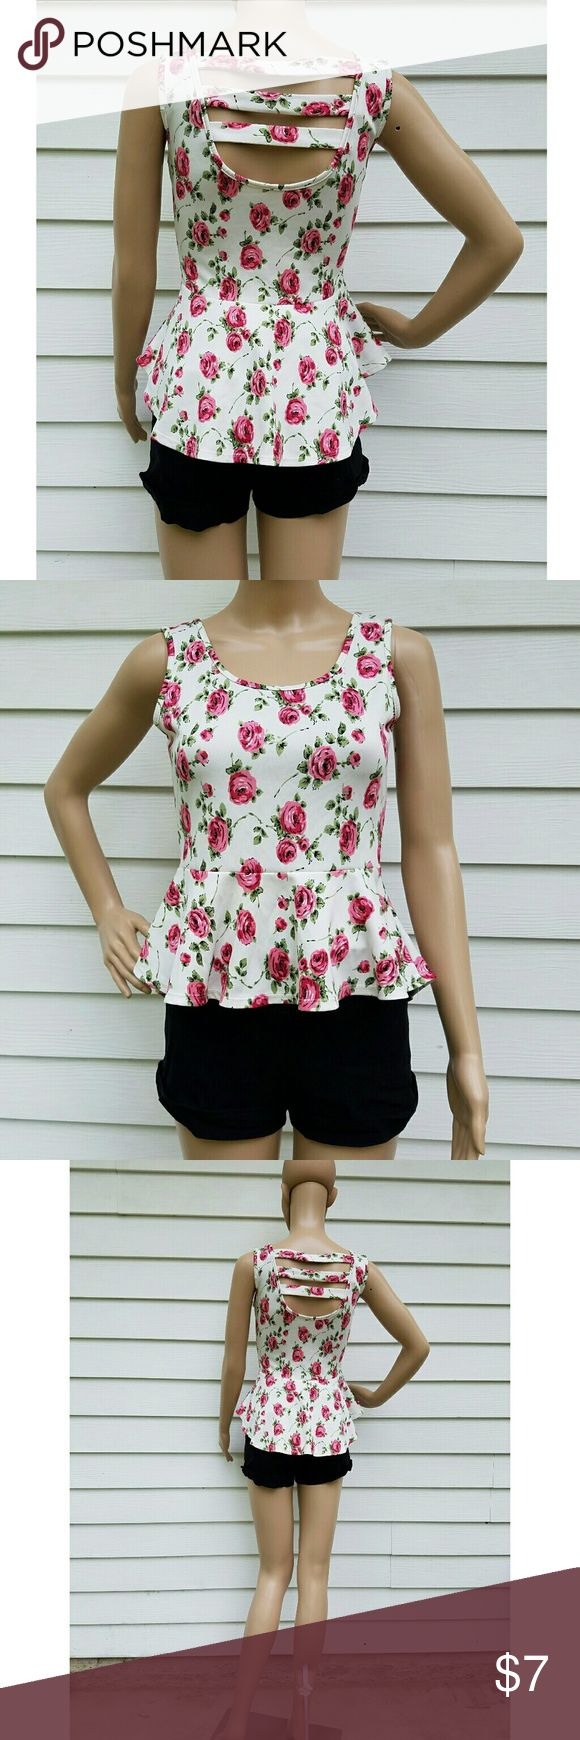 "Cute floral white peplum top Size 6 Good condition  Mannequin size is 6 Mannequin height is 5'6""  Check out my other items for sale  #top #peplum #whitetop #summertop #summer #peplumtop #floralshirt #shirt #sleeveless #openback Tops"